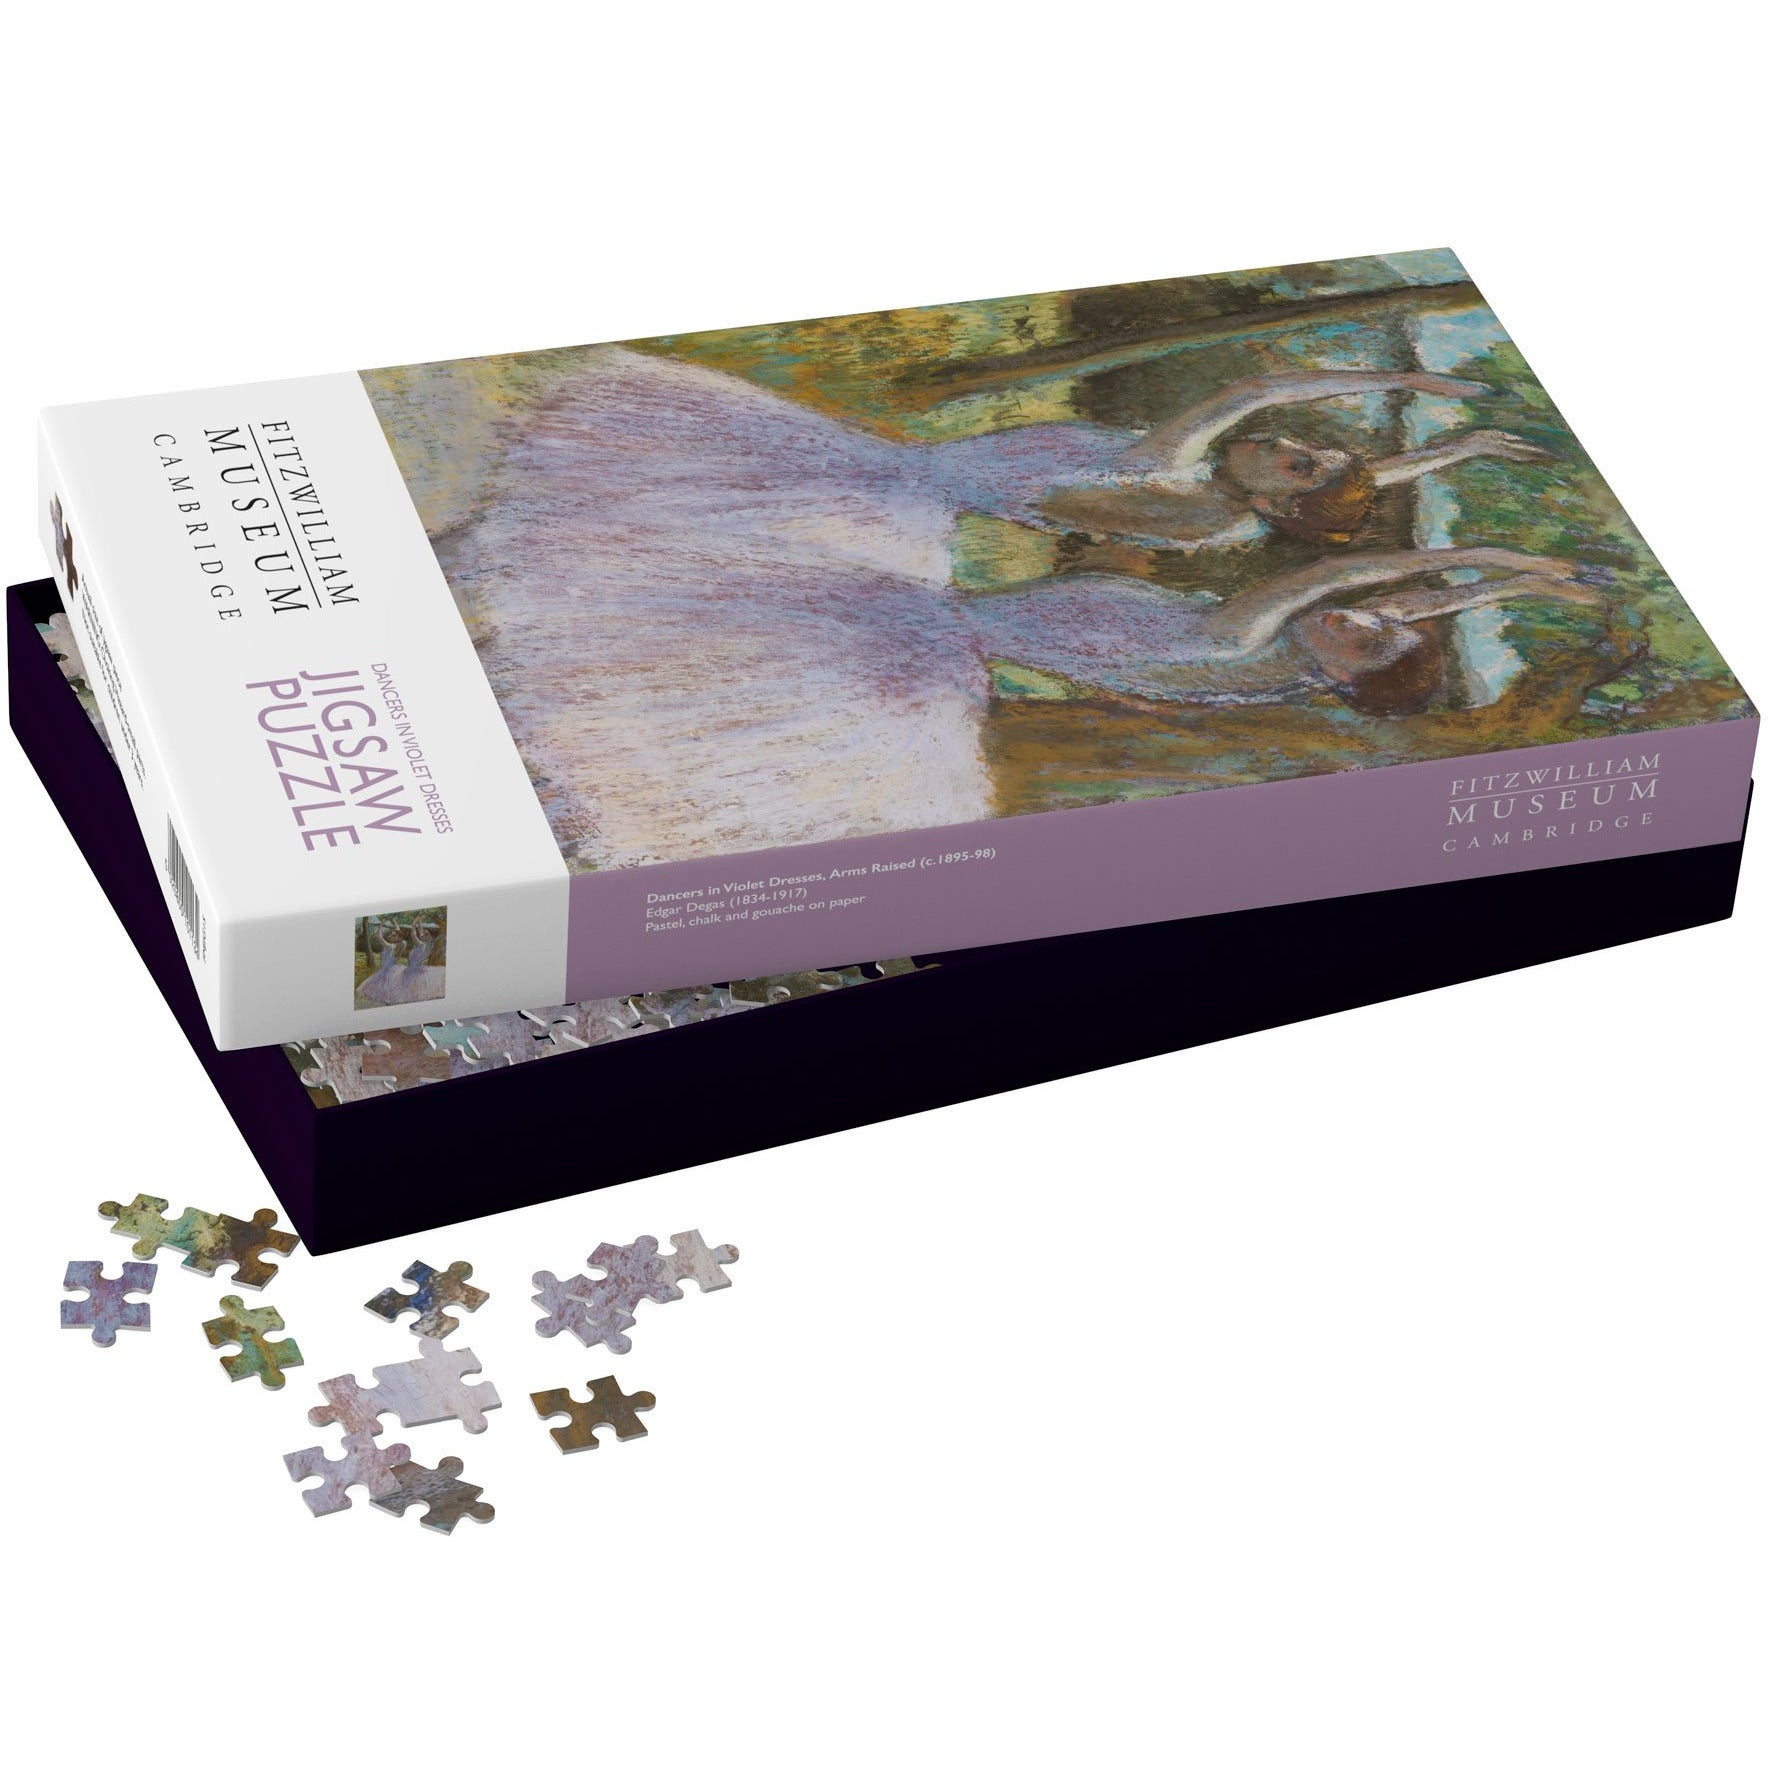 Featured image for the project: Dancers in Violet Dresses - 1000 piece jigsaw puzzle